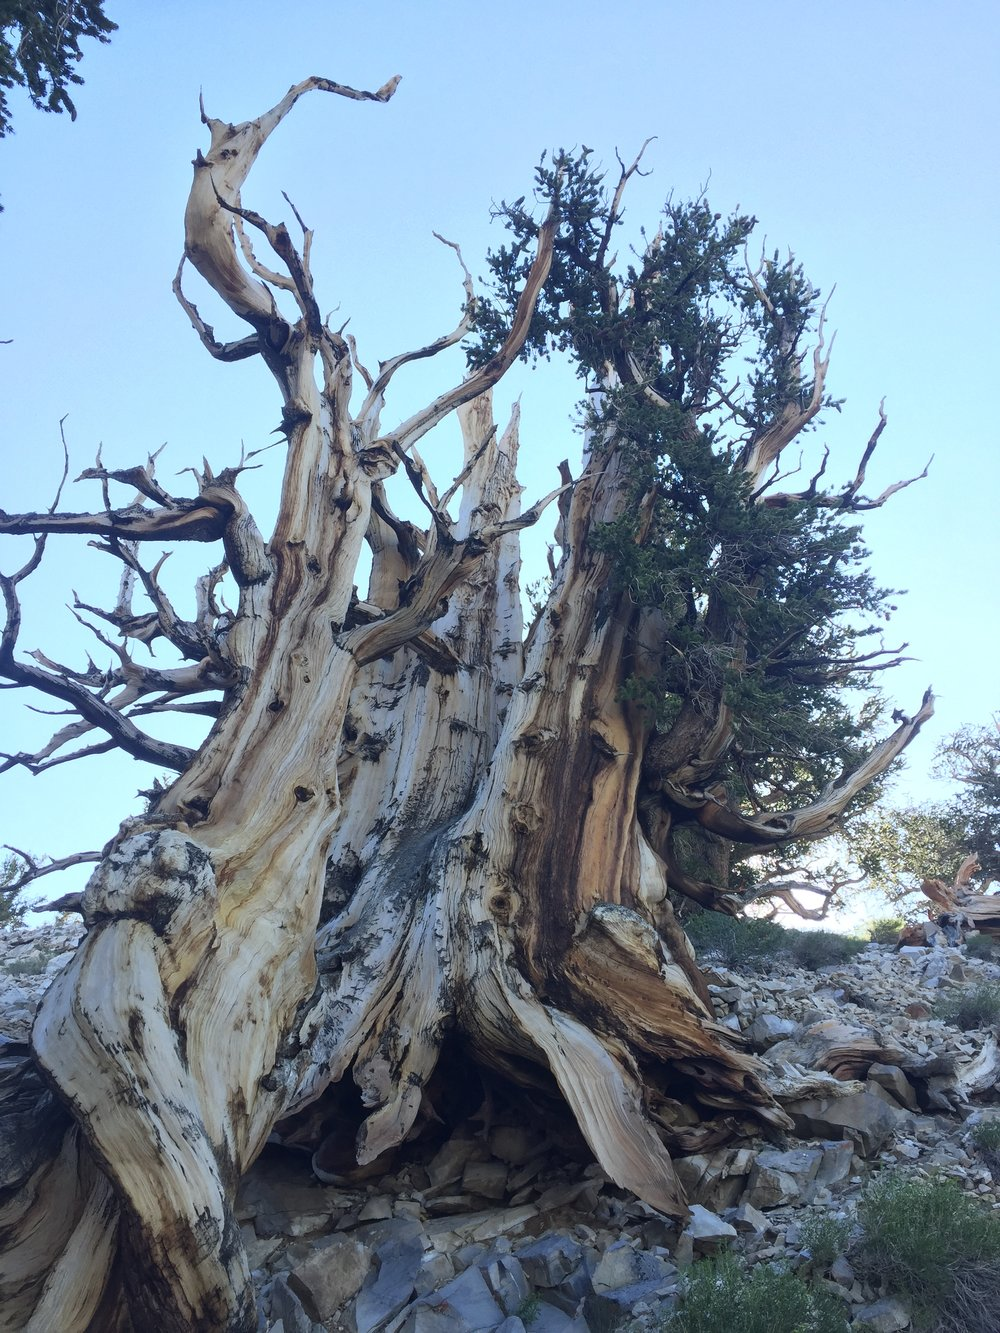 An Ancient One -- Great Basin Bristlecone pine -- 2 miles above Earth growing on 600 million year old Silurian dolomitic seafloor. These remarkable trees thrive on alkaline sediments. Ancient Ones eventually expire beyond 5,000 years because they outgrow the former Silurian seafloor. Unprecedented.